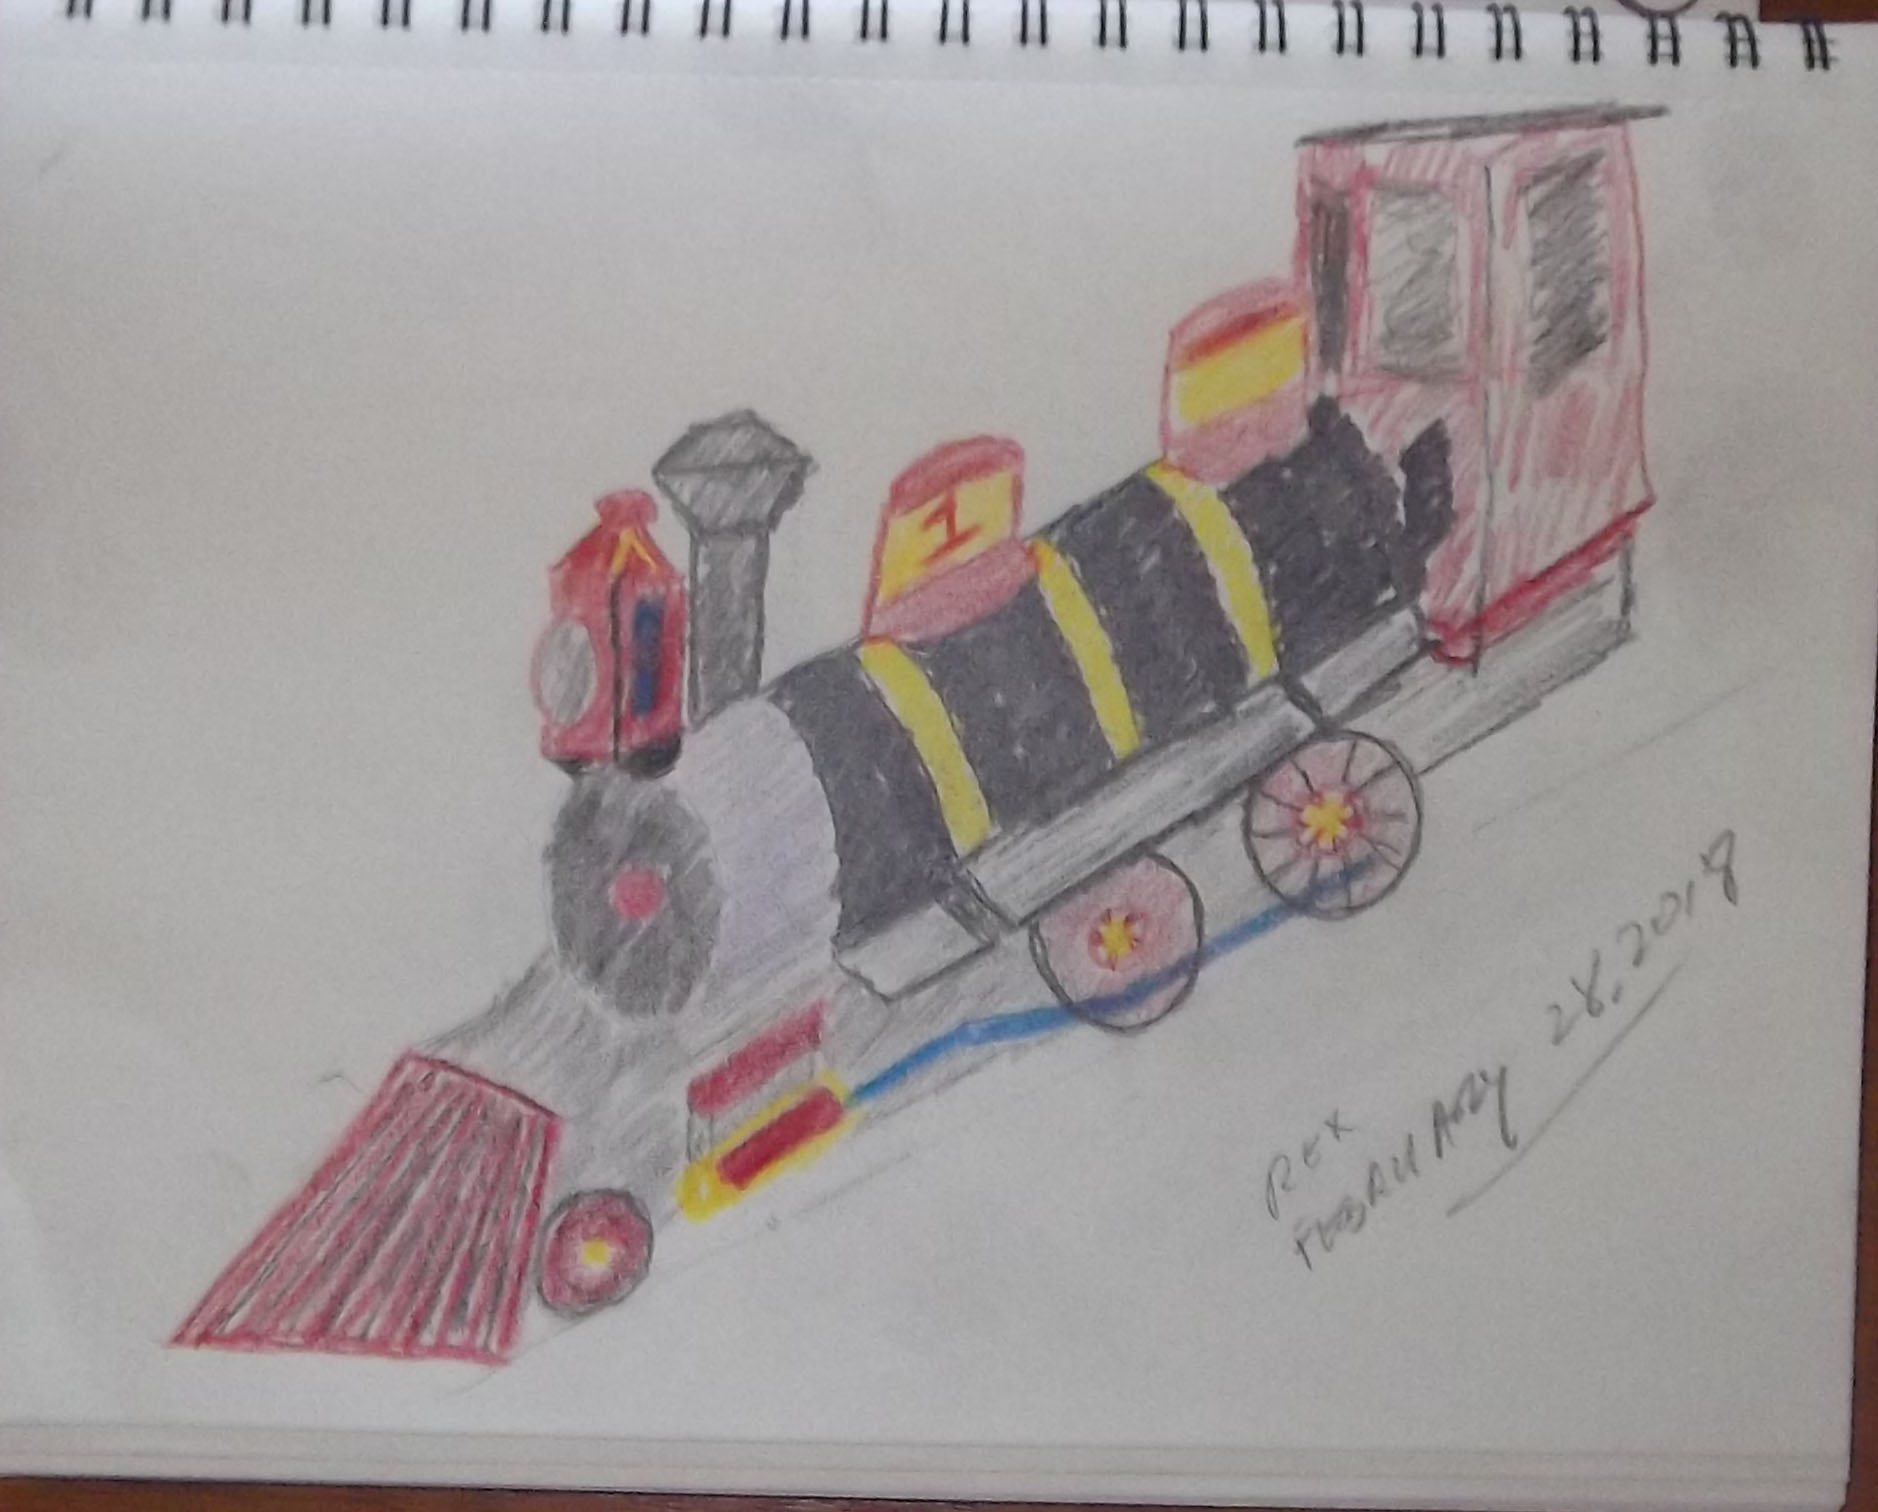 Disneyland Railroad #1 - Fred Gurley